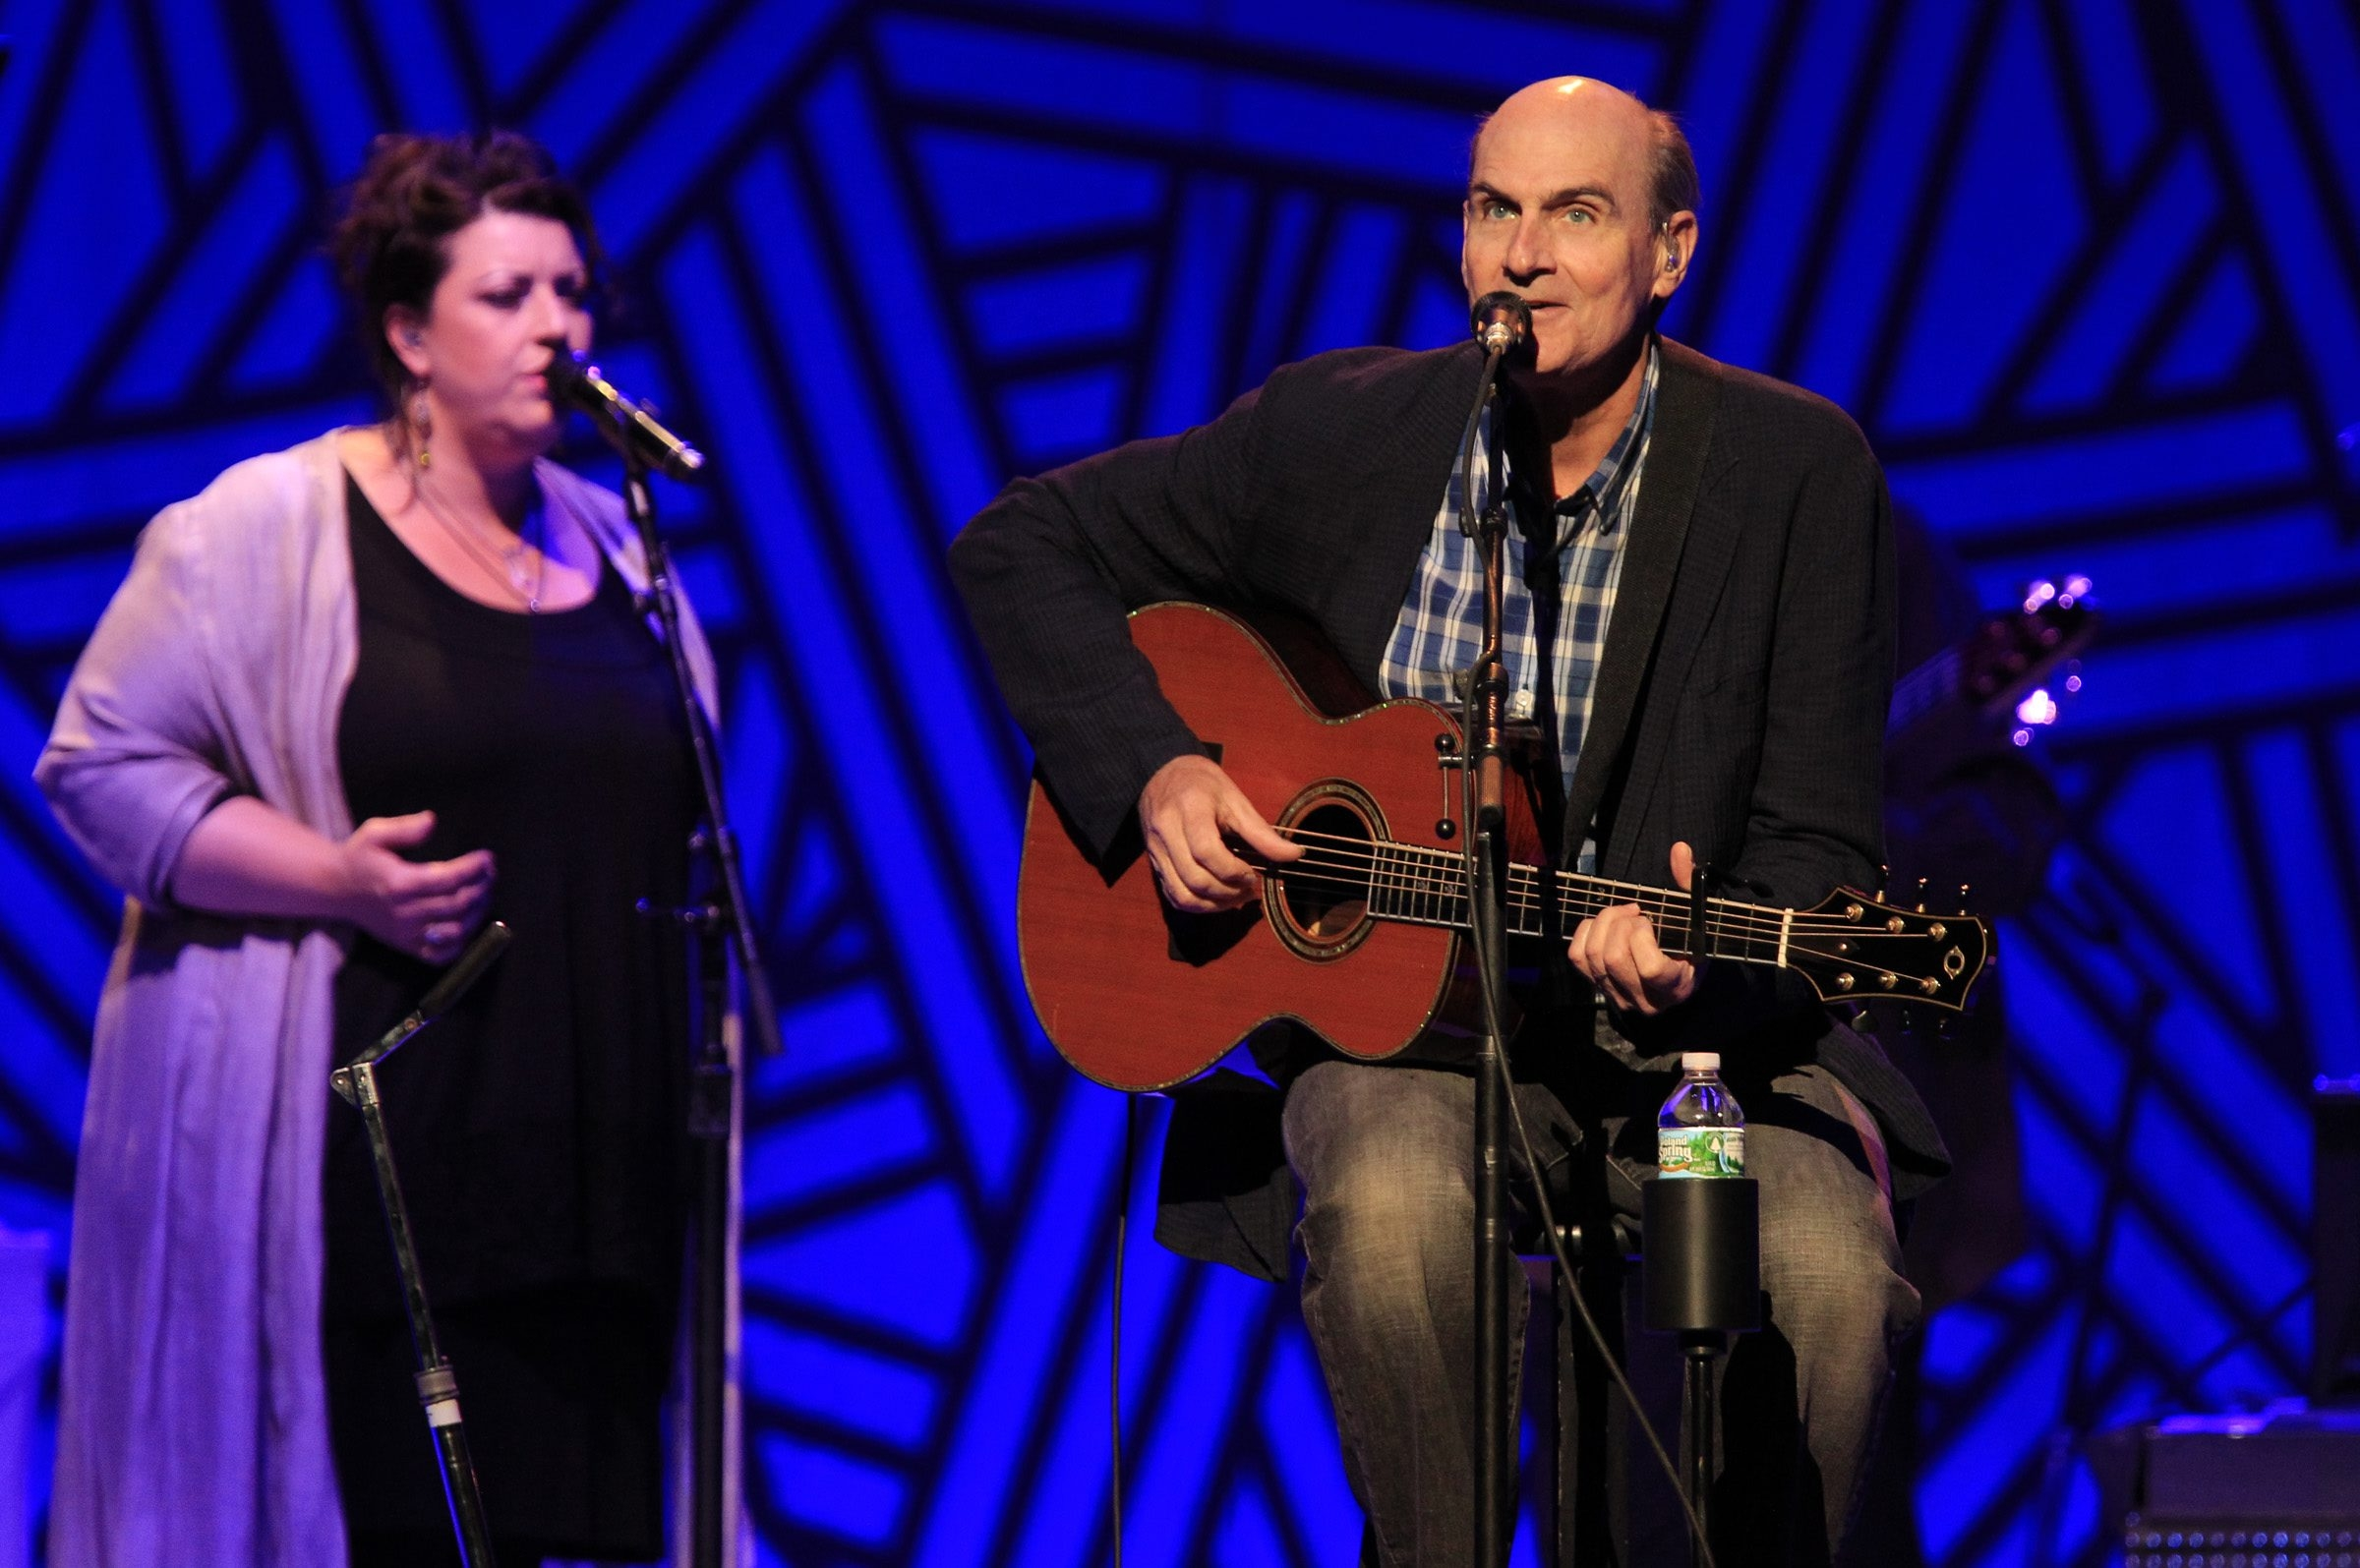 James Taylor performs at the First Niagara Center on Tuesday, July 29, 2014. (Harry Scull Jr./Buffalo News)